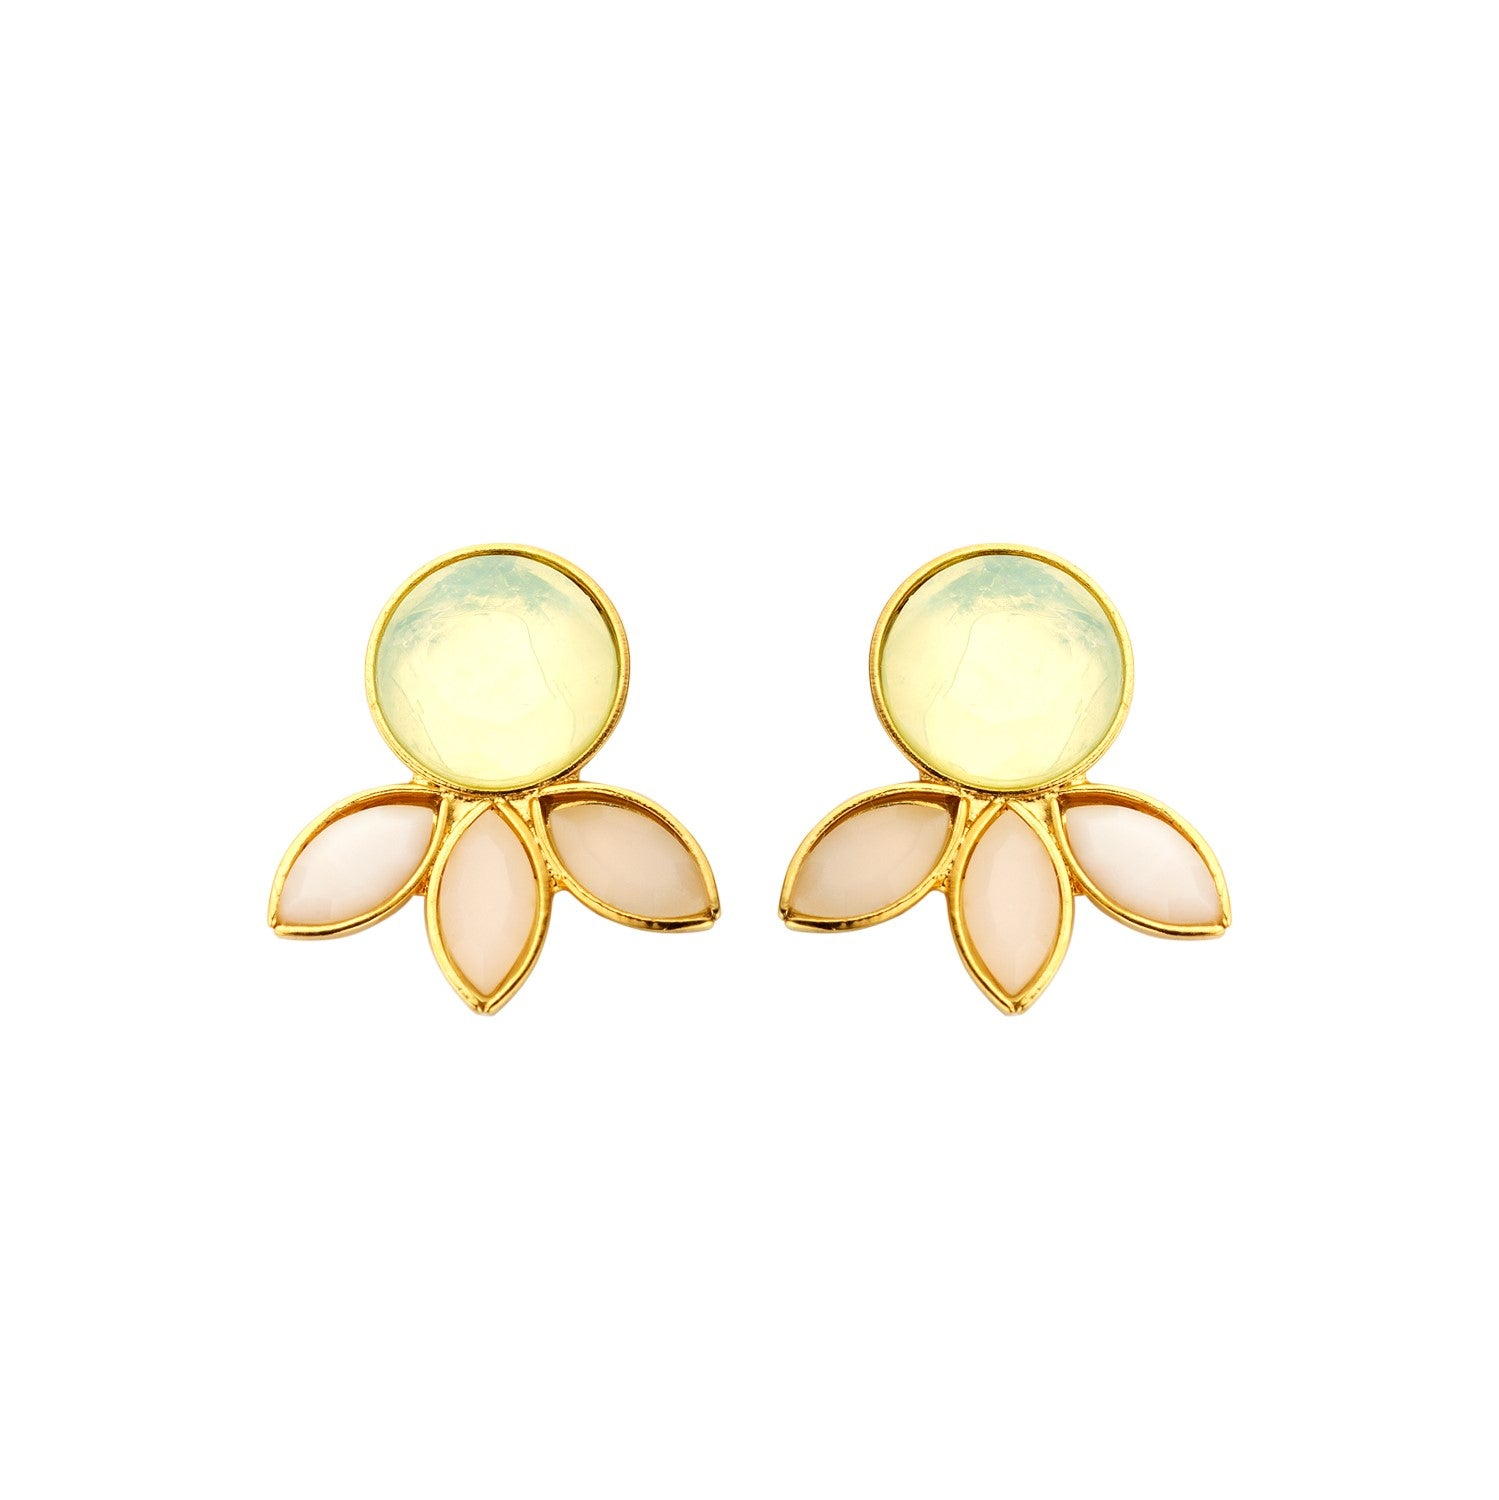 Palm Navet milk white earrings